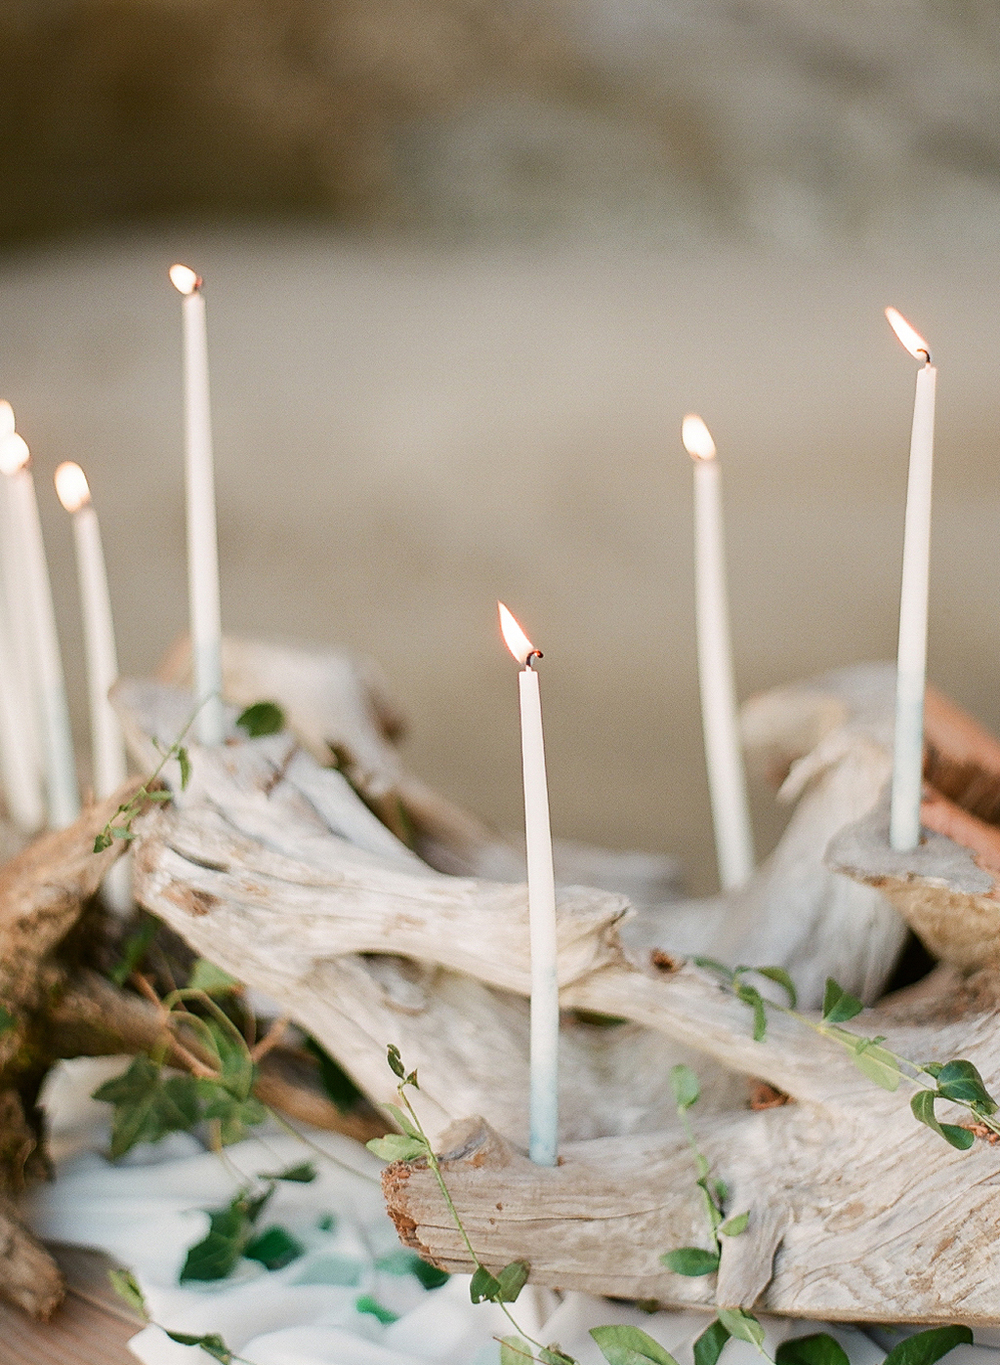 a driftwood centerpiece with dip-dyed indigo skinny taper candles during this oregon coast wedding photographed by Destination Wedding Photographer Lexia Frank -a film photographer in portland oregon. TOP DESTINATION WEDDING PHOTOGRAPHY, OREGON COAST WEDDING, WWW DOT LEXIA FRANK DOT COM